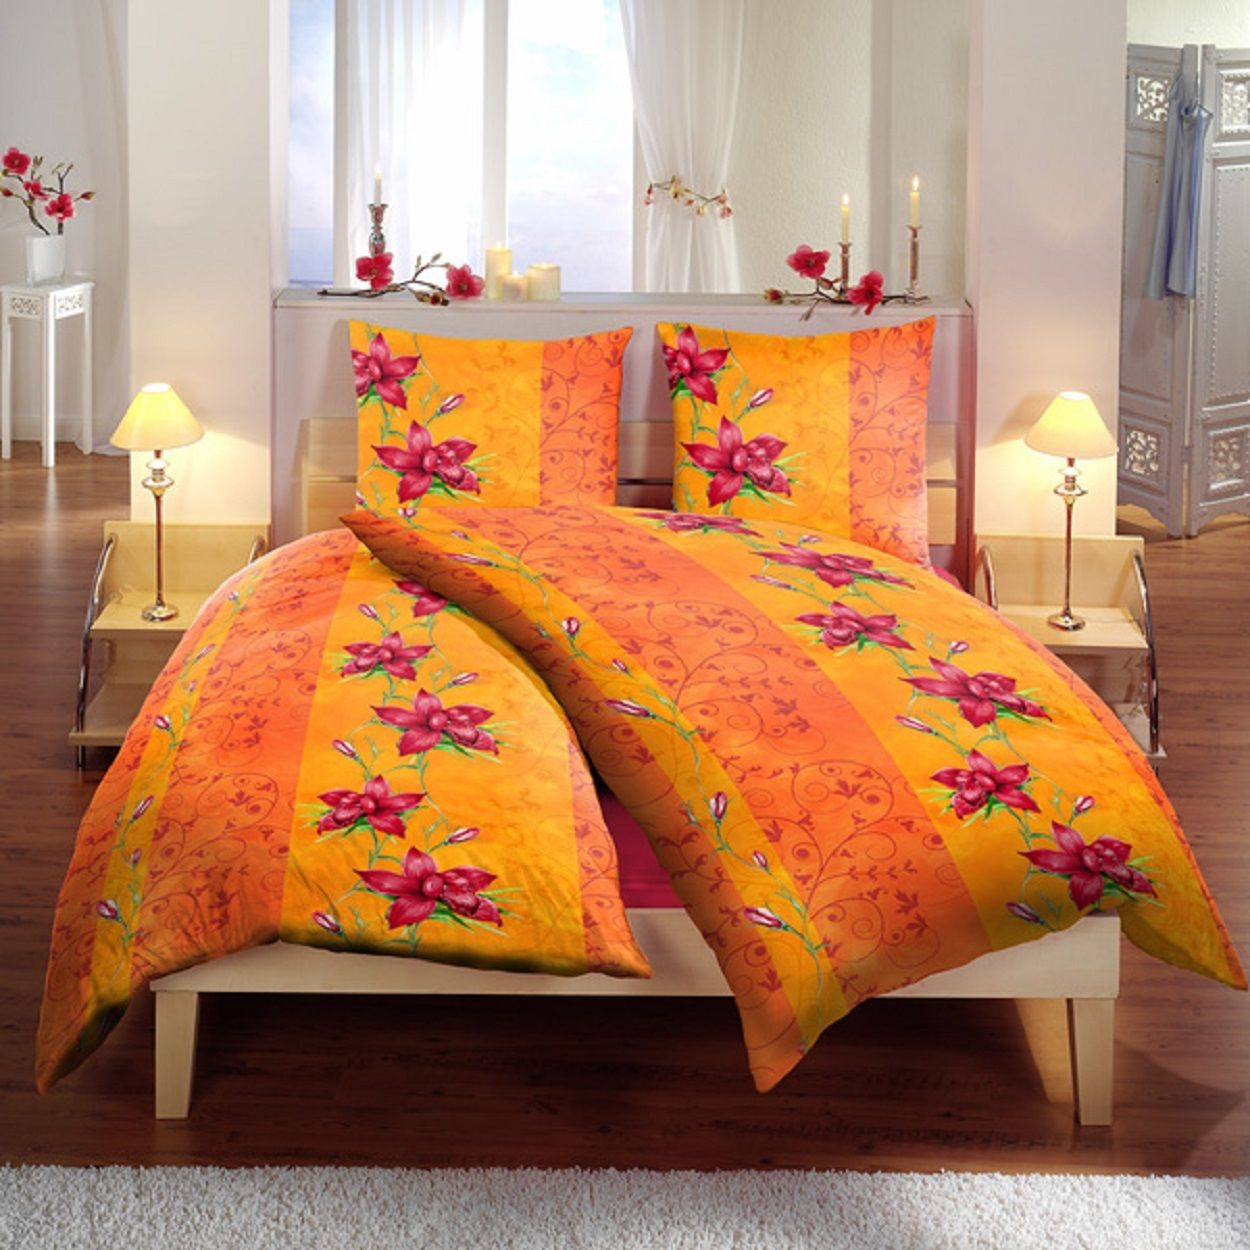 6 teilige bettw sche 160 x 210 cm blume orange microfaser garnitur set bettw sche 4 teilig. Black Bedroom Furniture Sets. Home Design Ideas